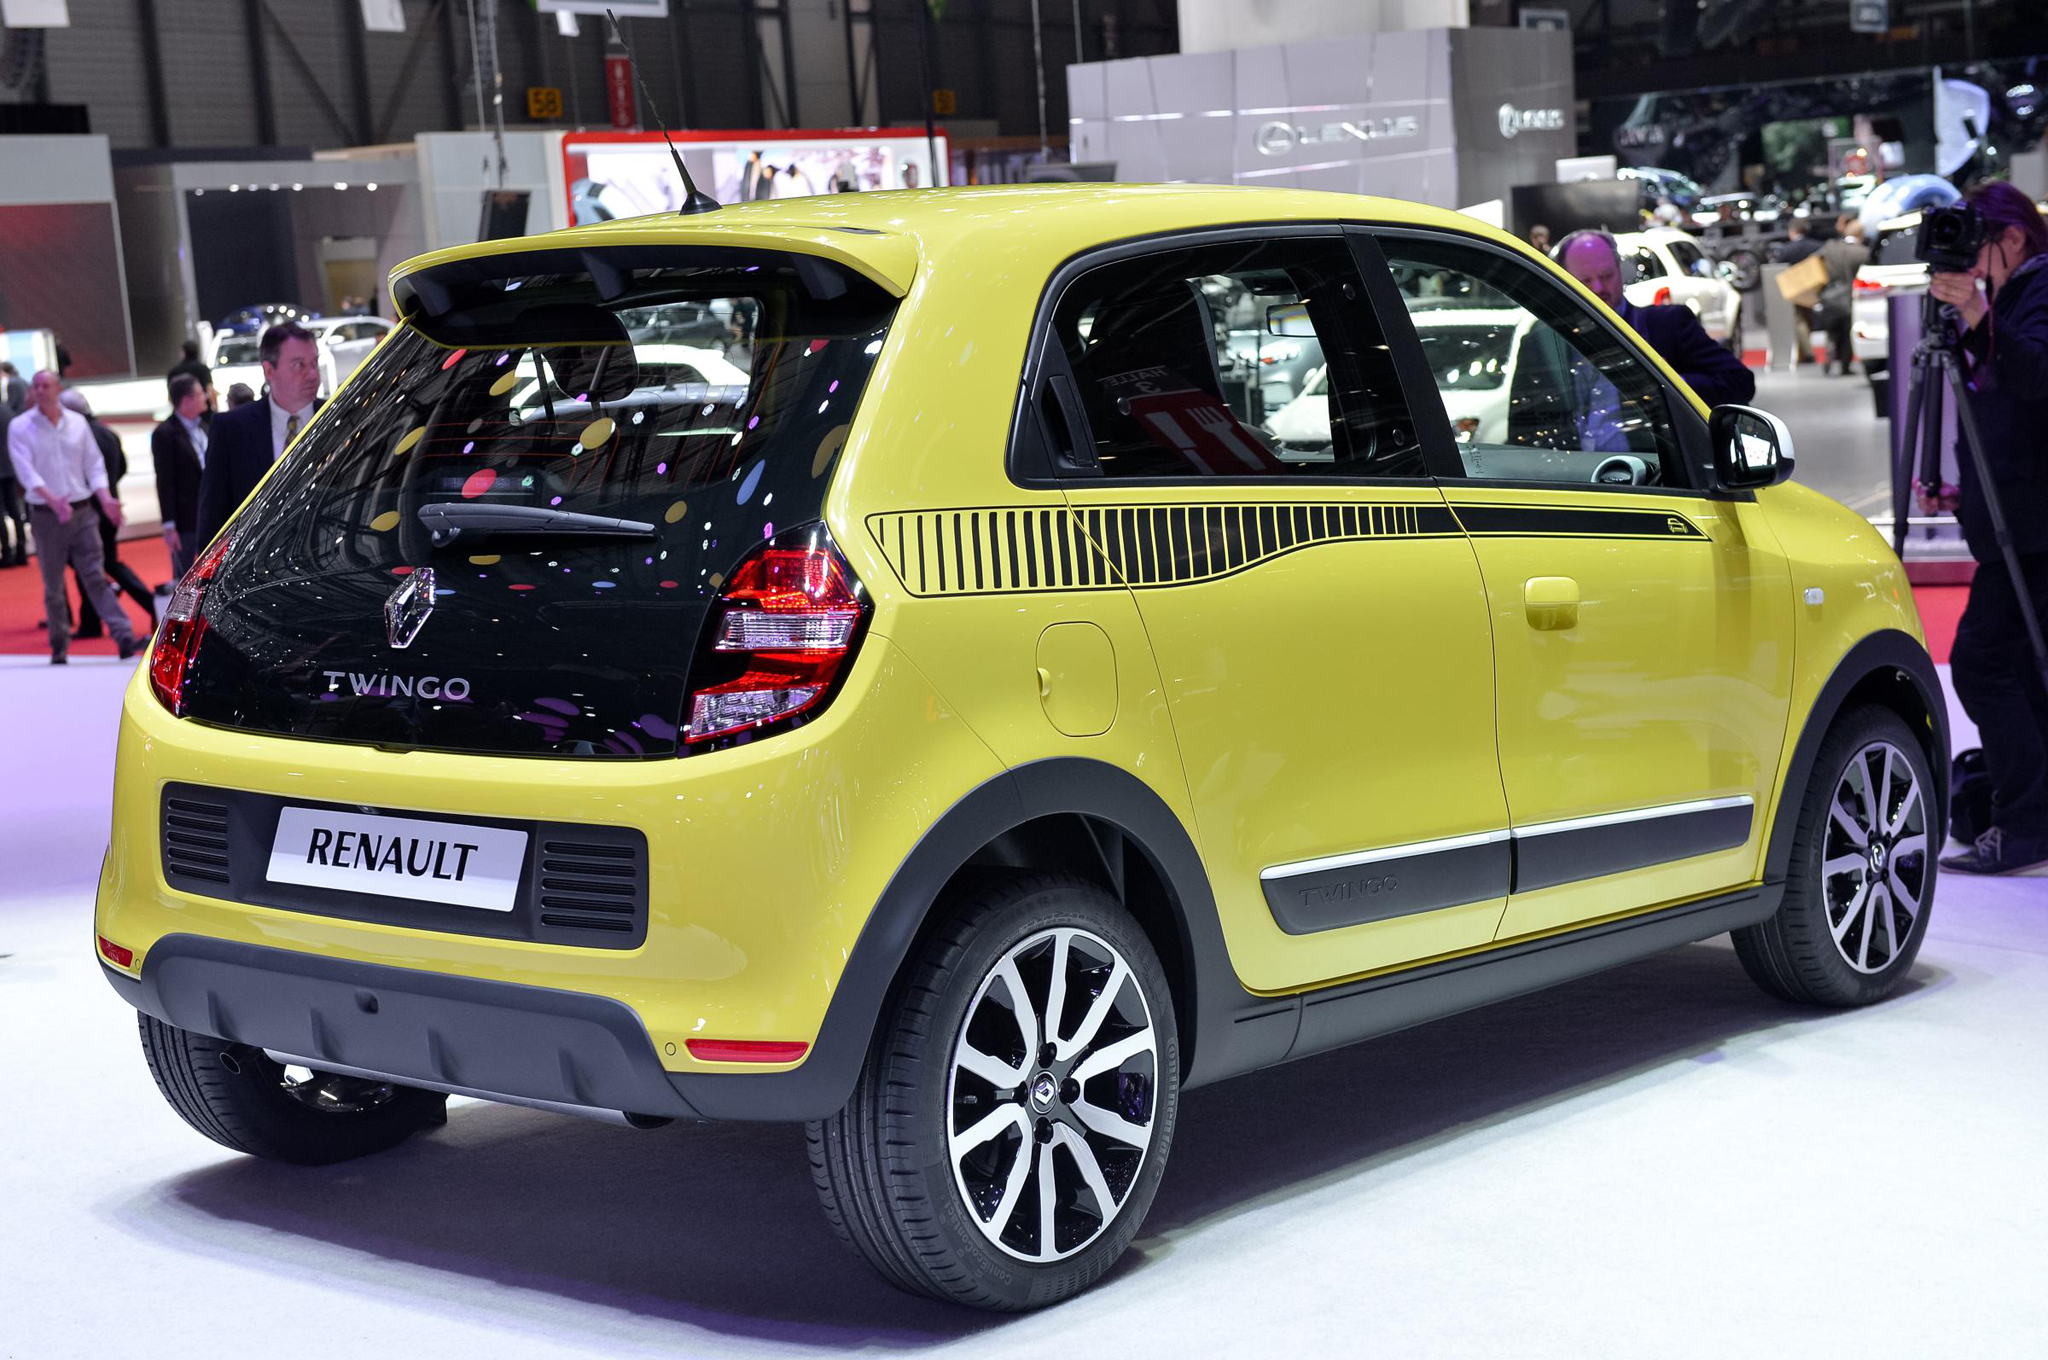 2015 Renault Twingo Yellow Color Rear Side Image